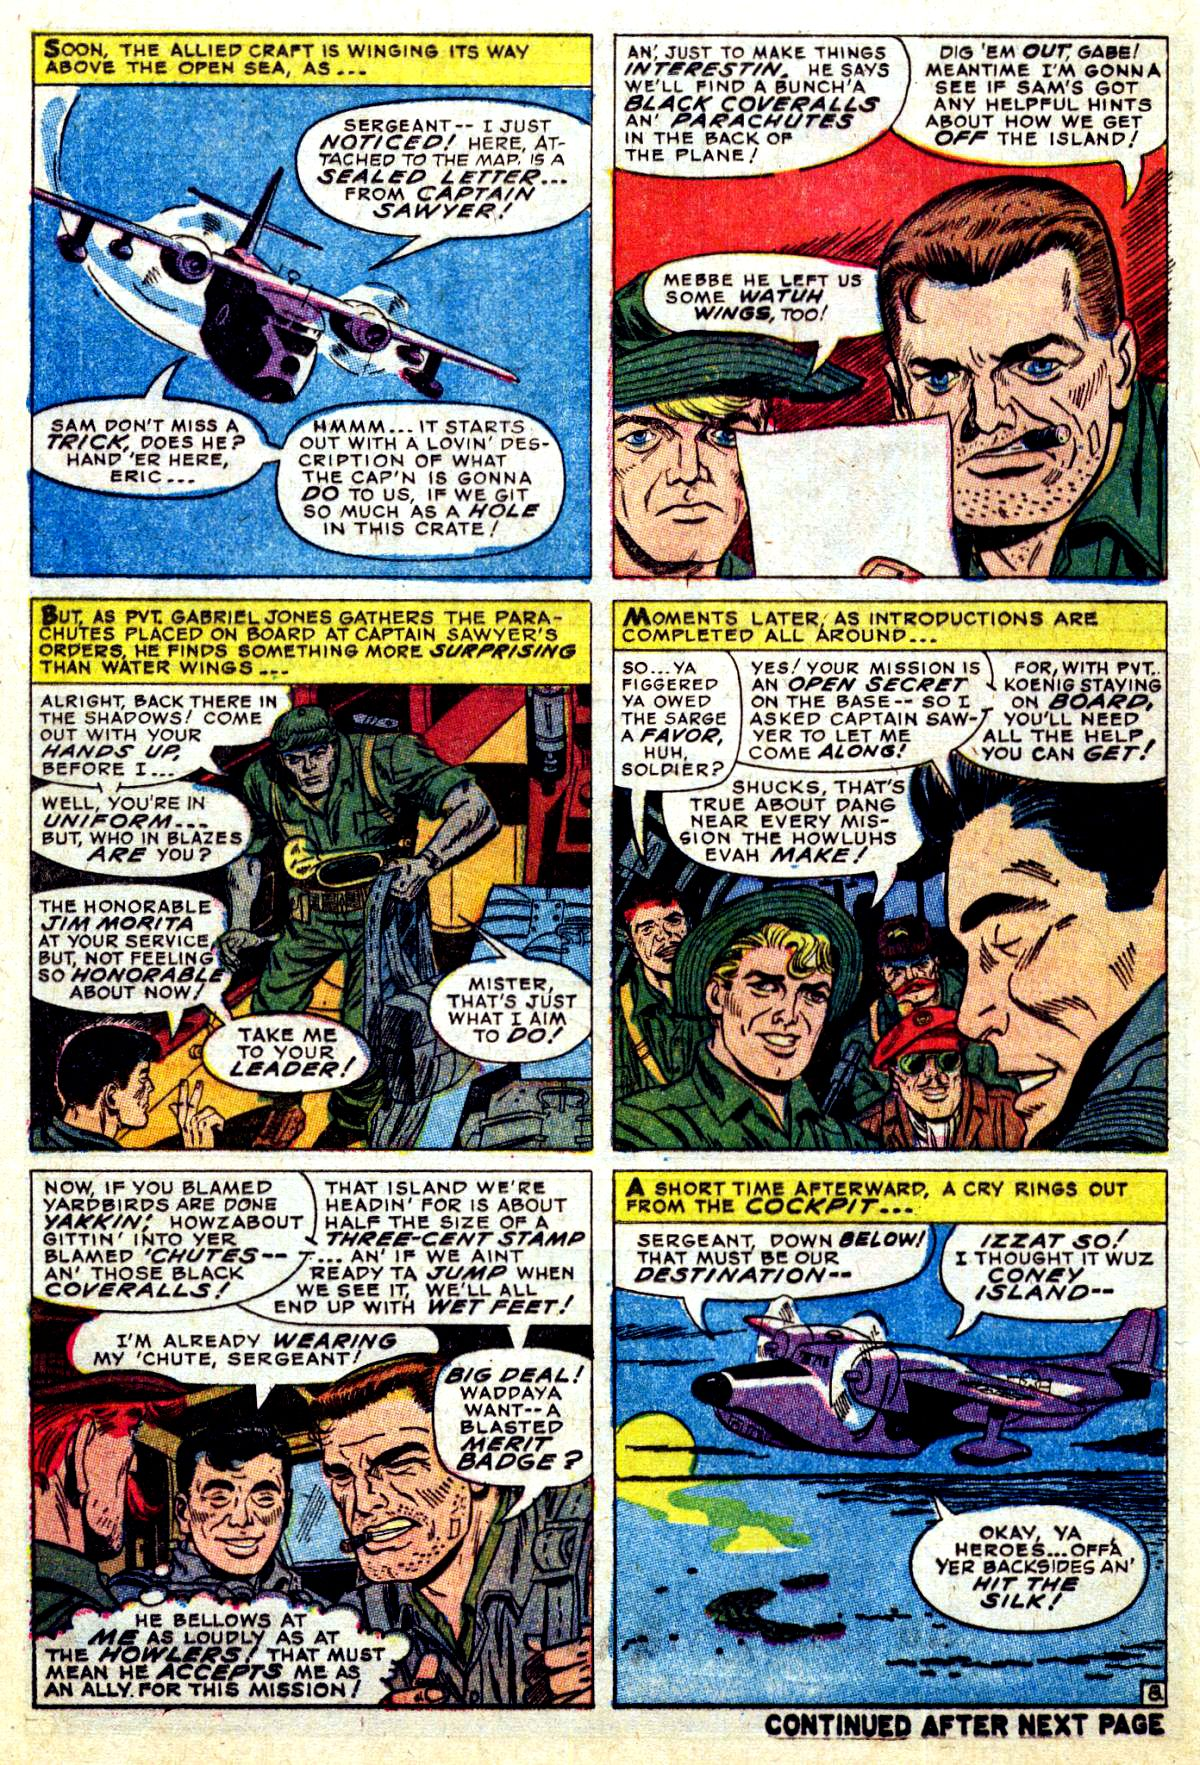 Read online Sgt. Fury comic -  Issue #38 - 12